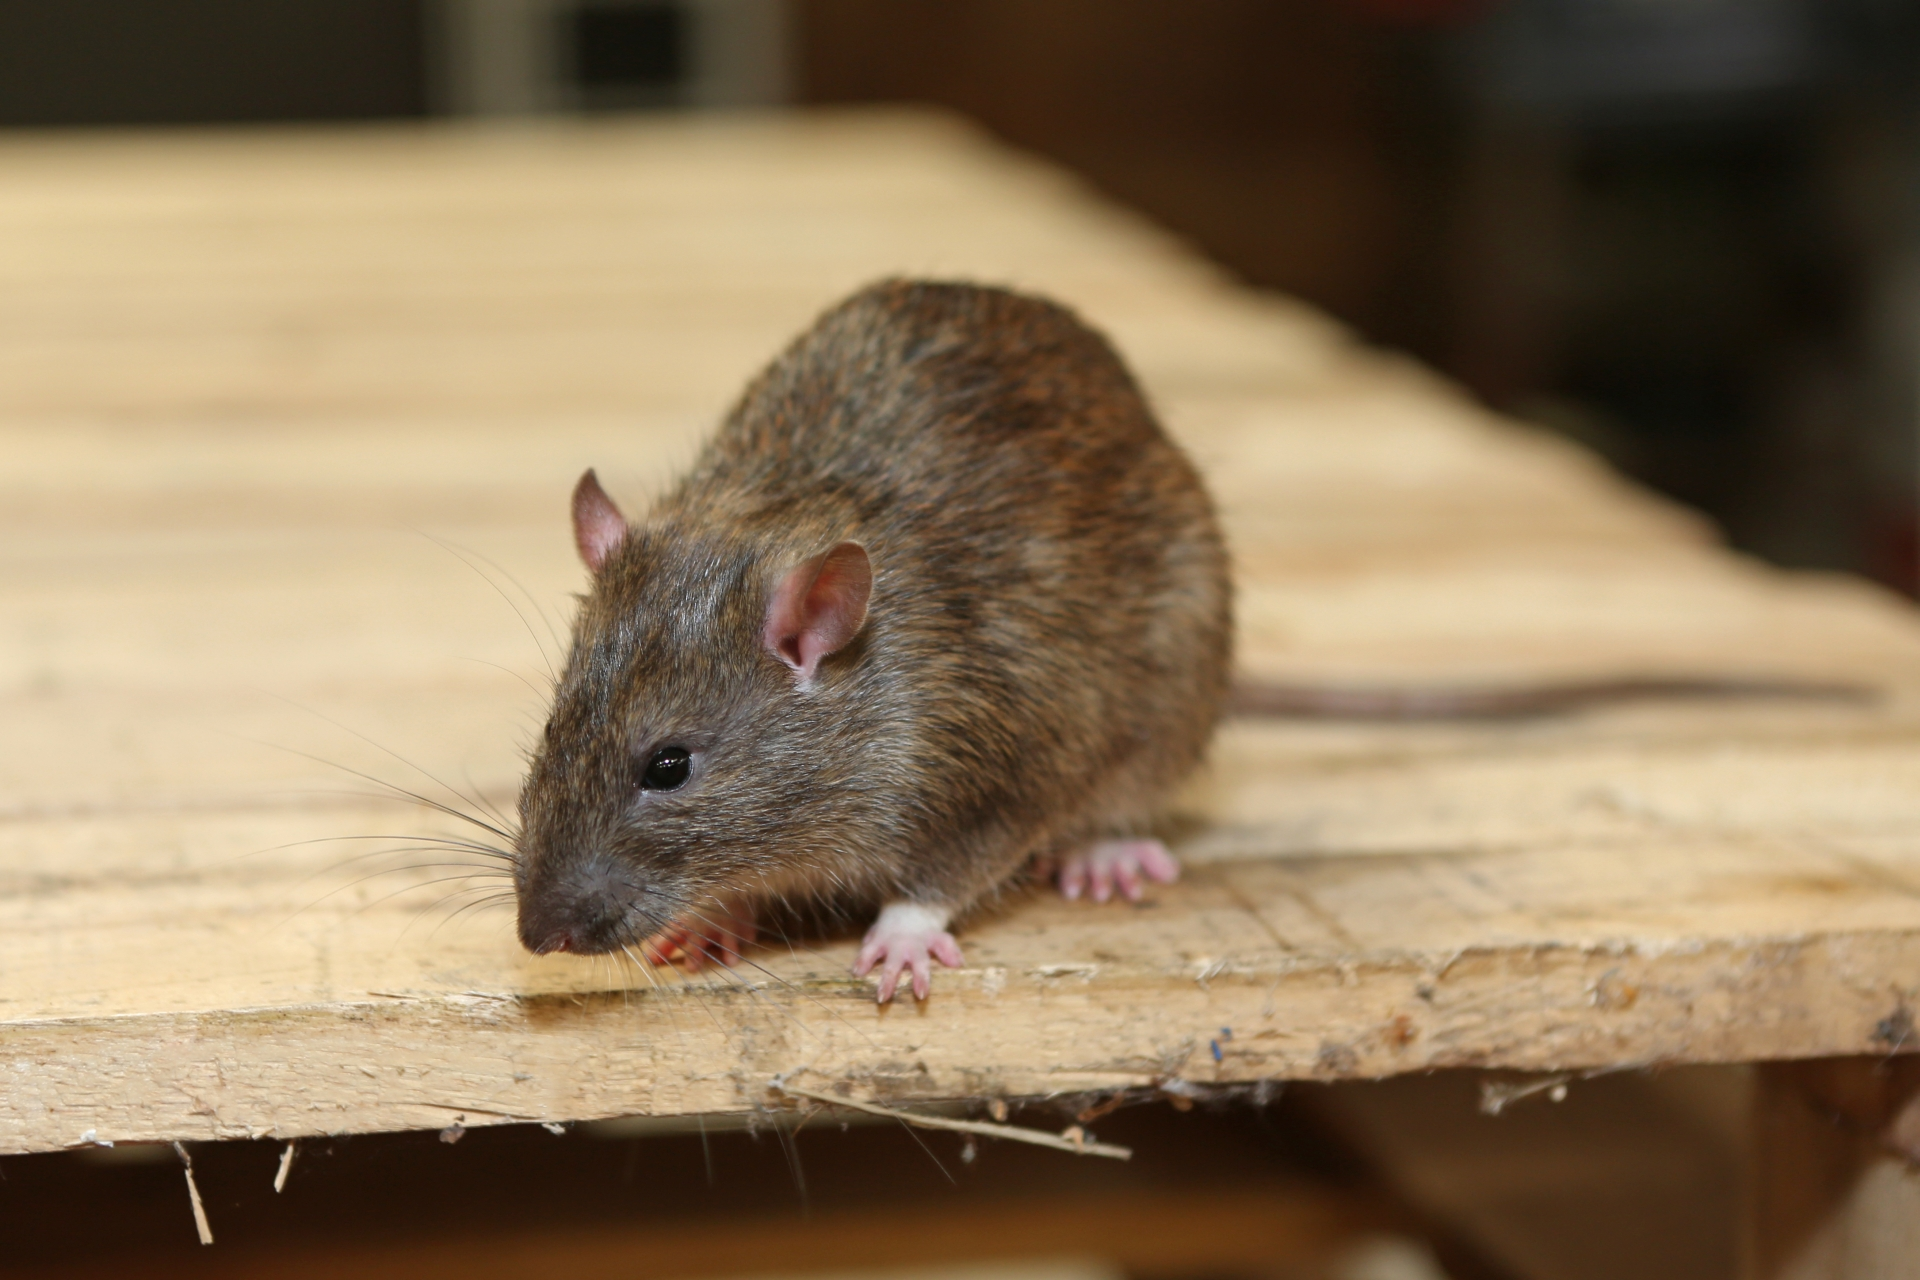 Rat Control, Pest Control in Highgate, N6. Call Now 020 8166 9746